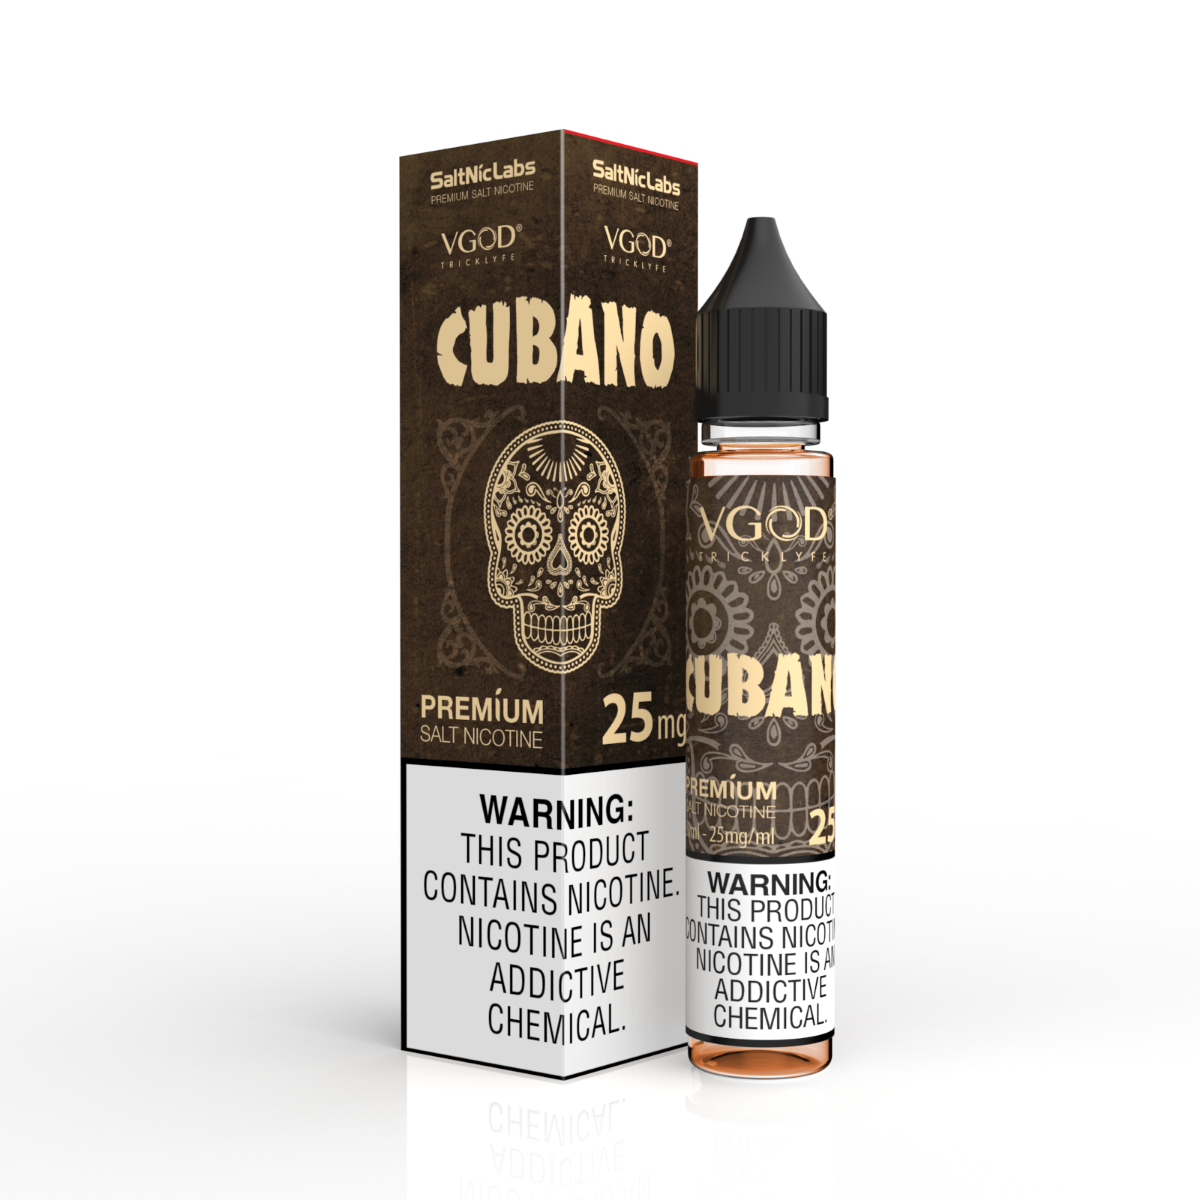 VGOD VGOD Cubano Salt Nic 30ml E-liquid